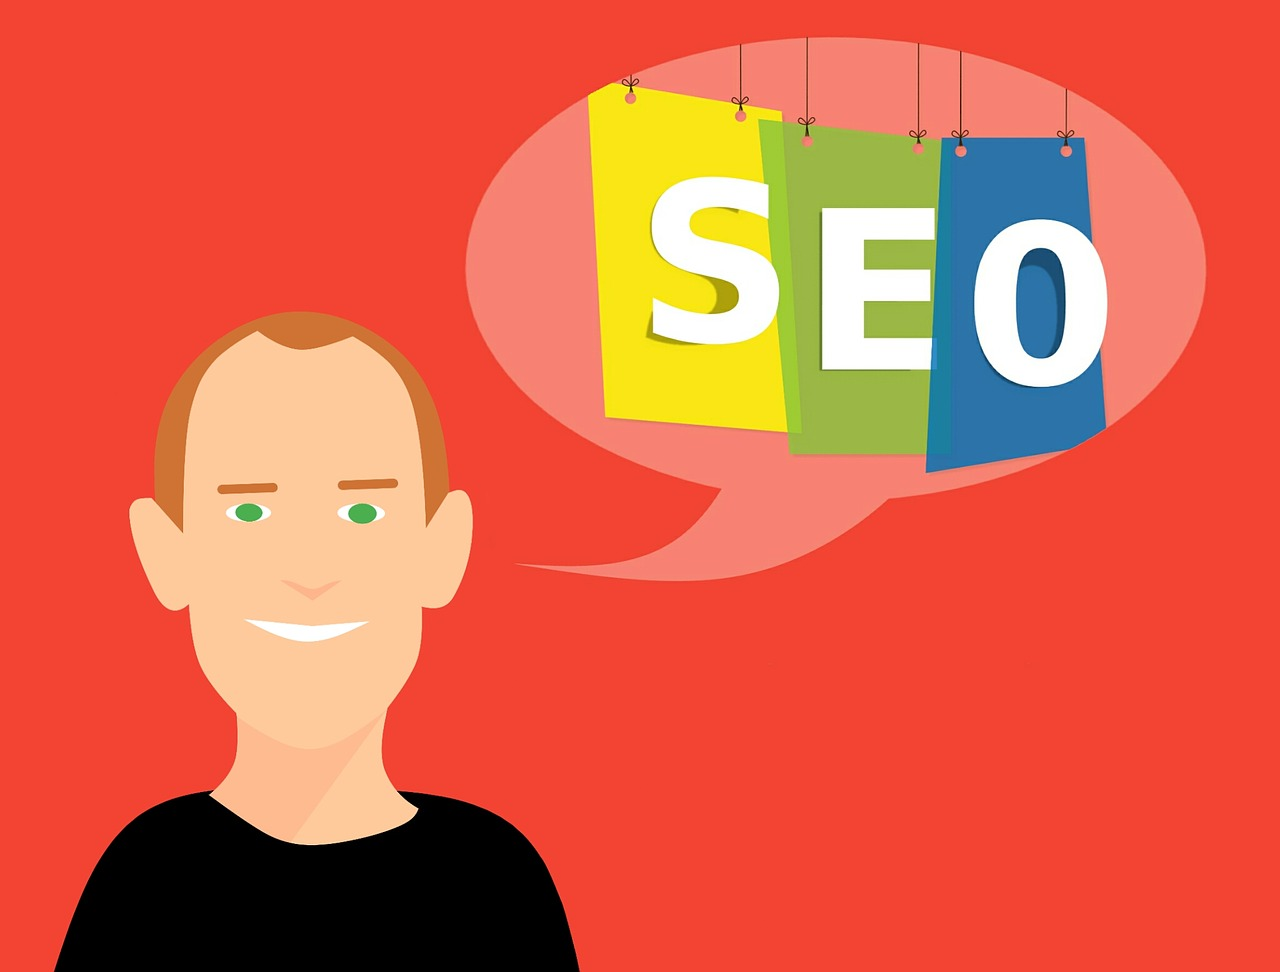 Google Introduces A Series That Show The Value Of SEO For Blog Posts